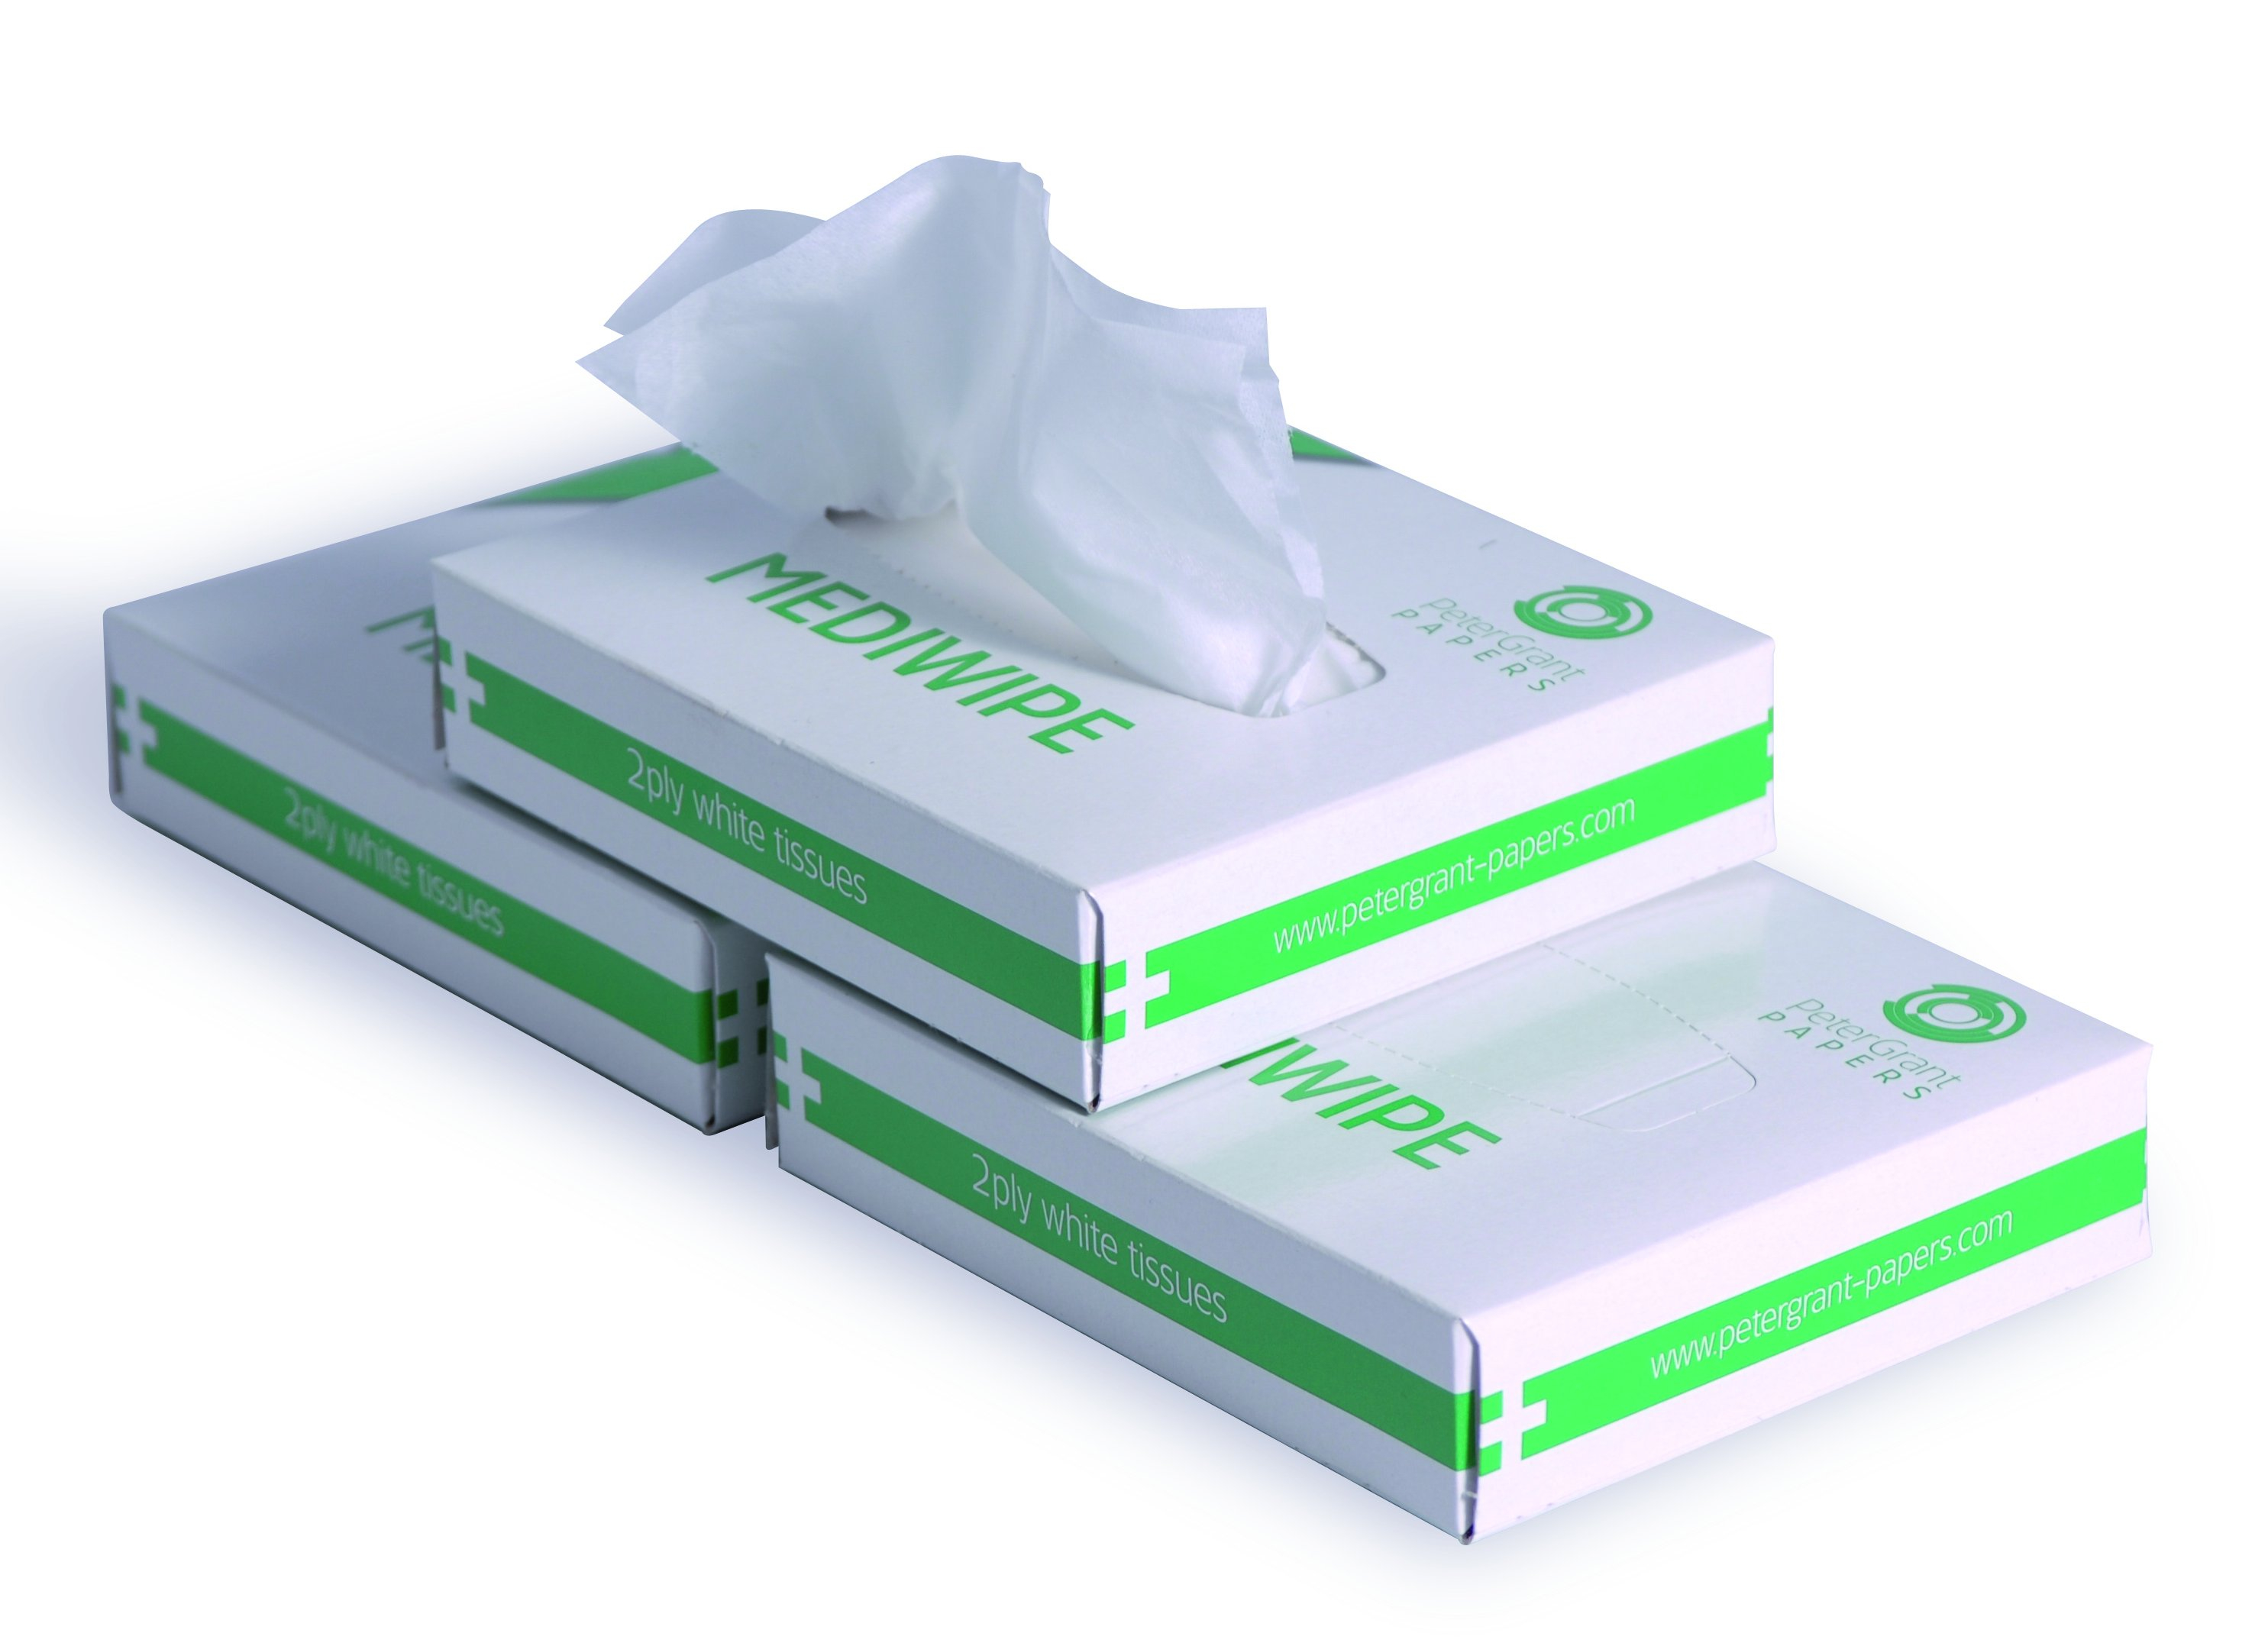 2Ply White Medical Wipes